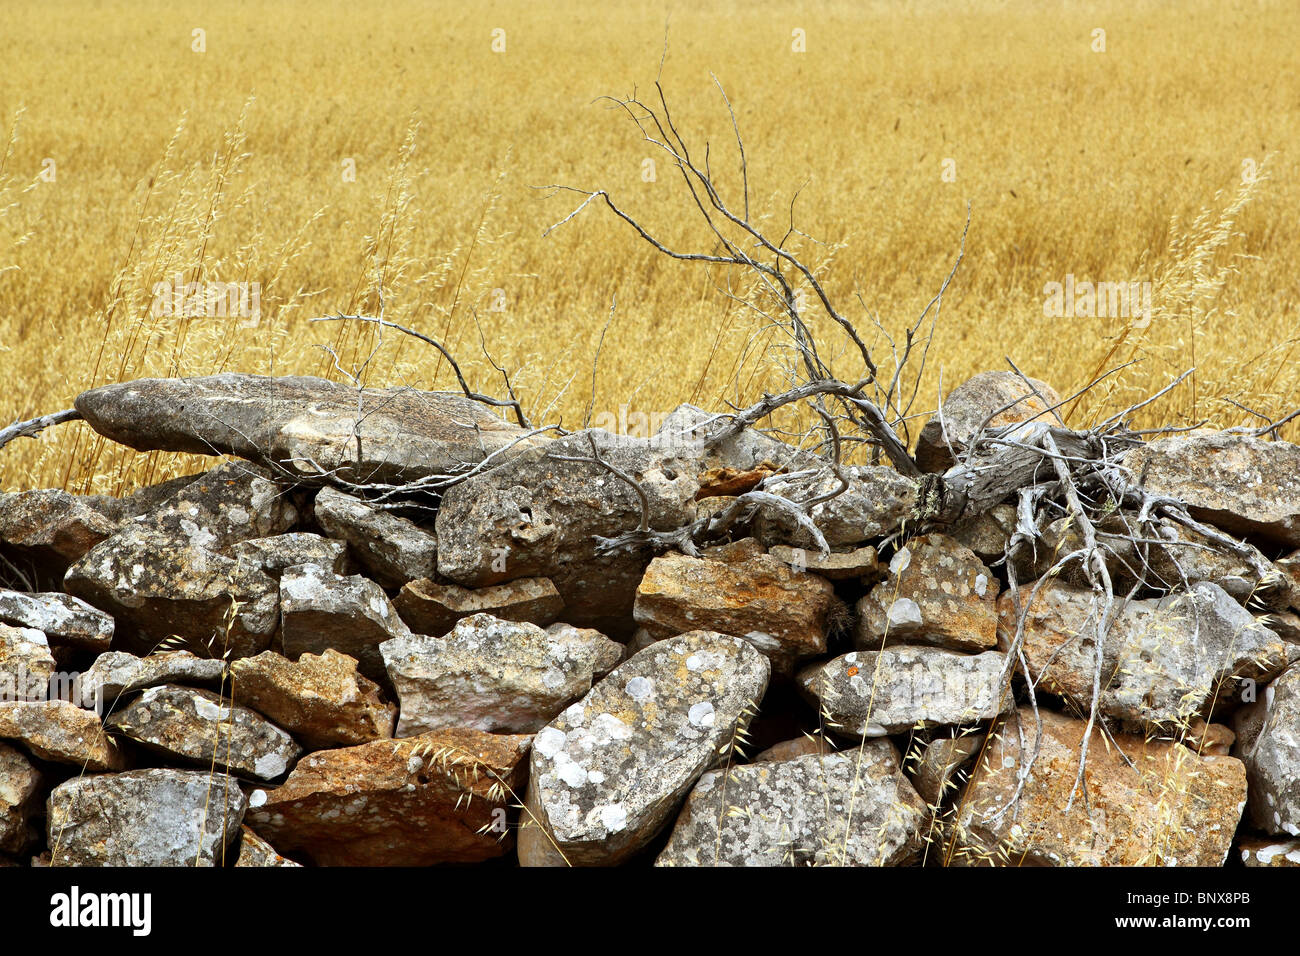 masonry stone wall golden summer field Formentera Balearic Islands - Stock Image